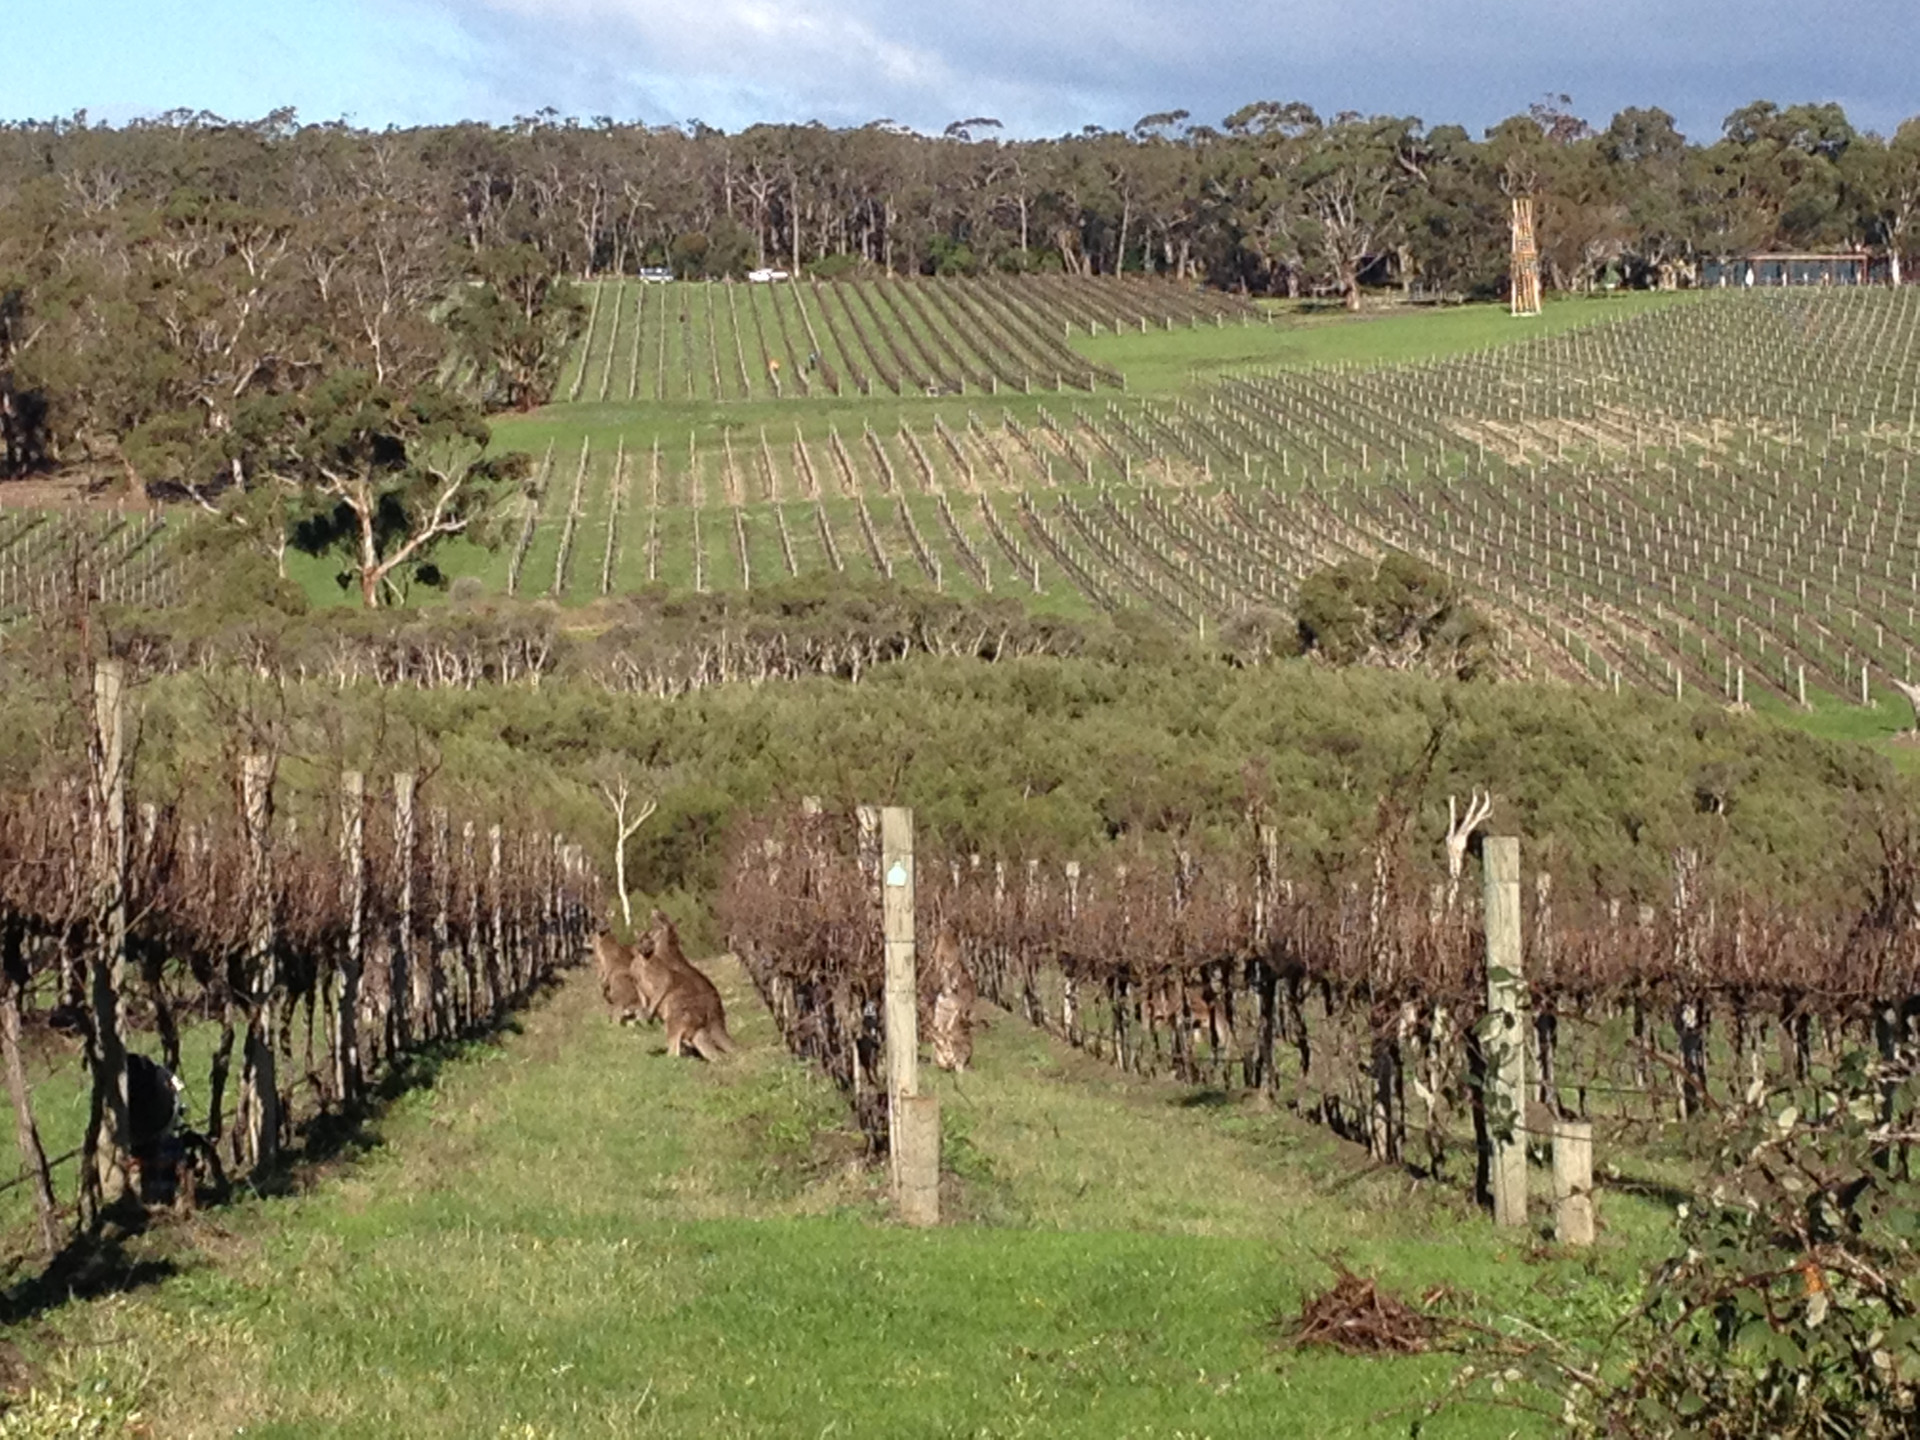 Mornington Peninsula vineyard with kangaroos!